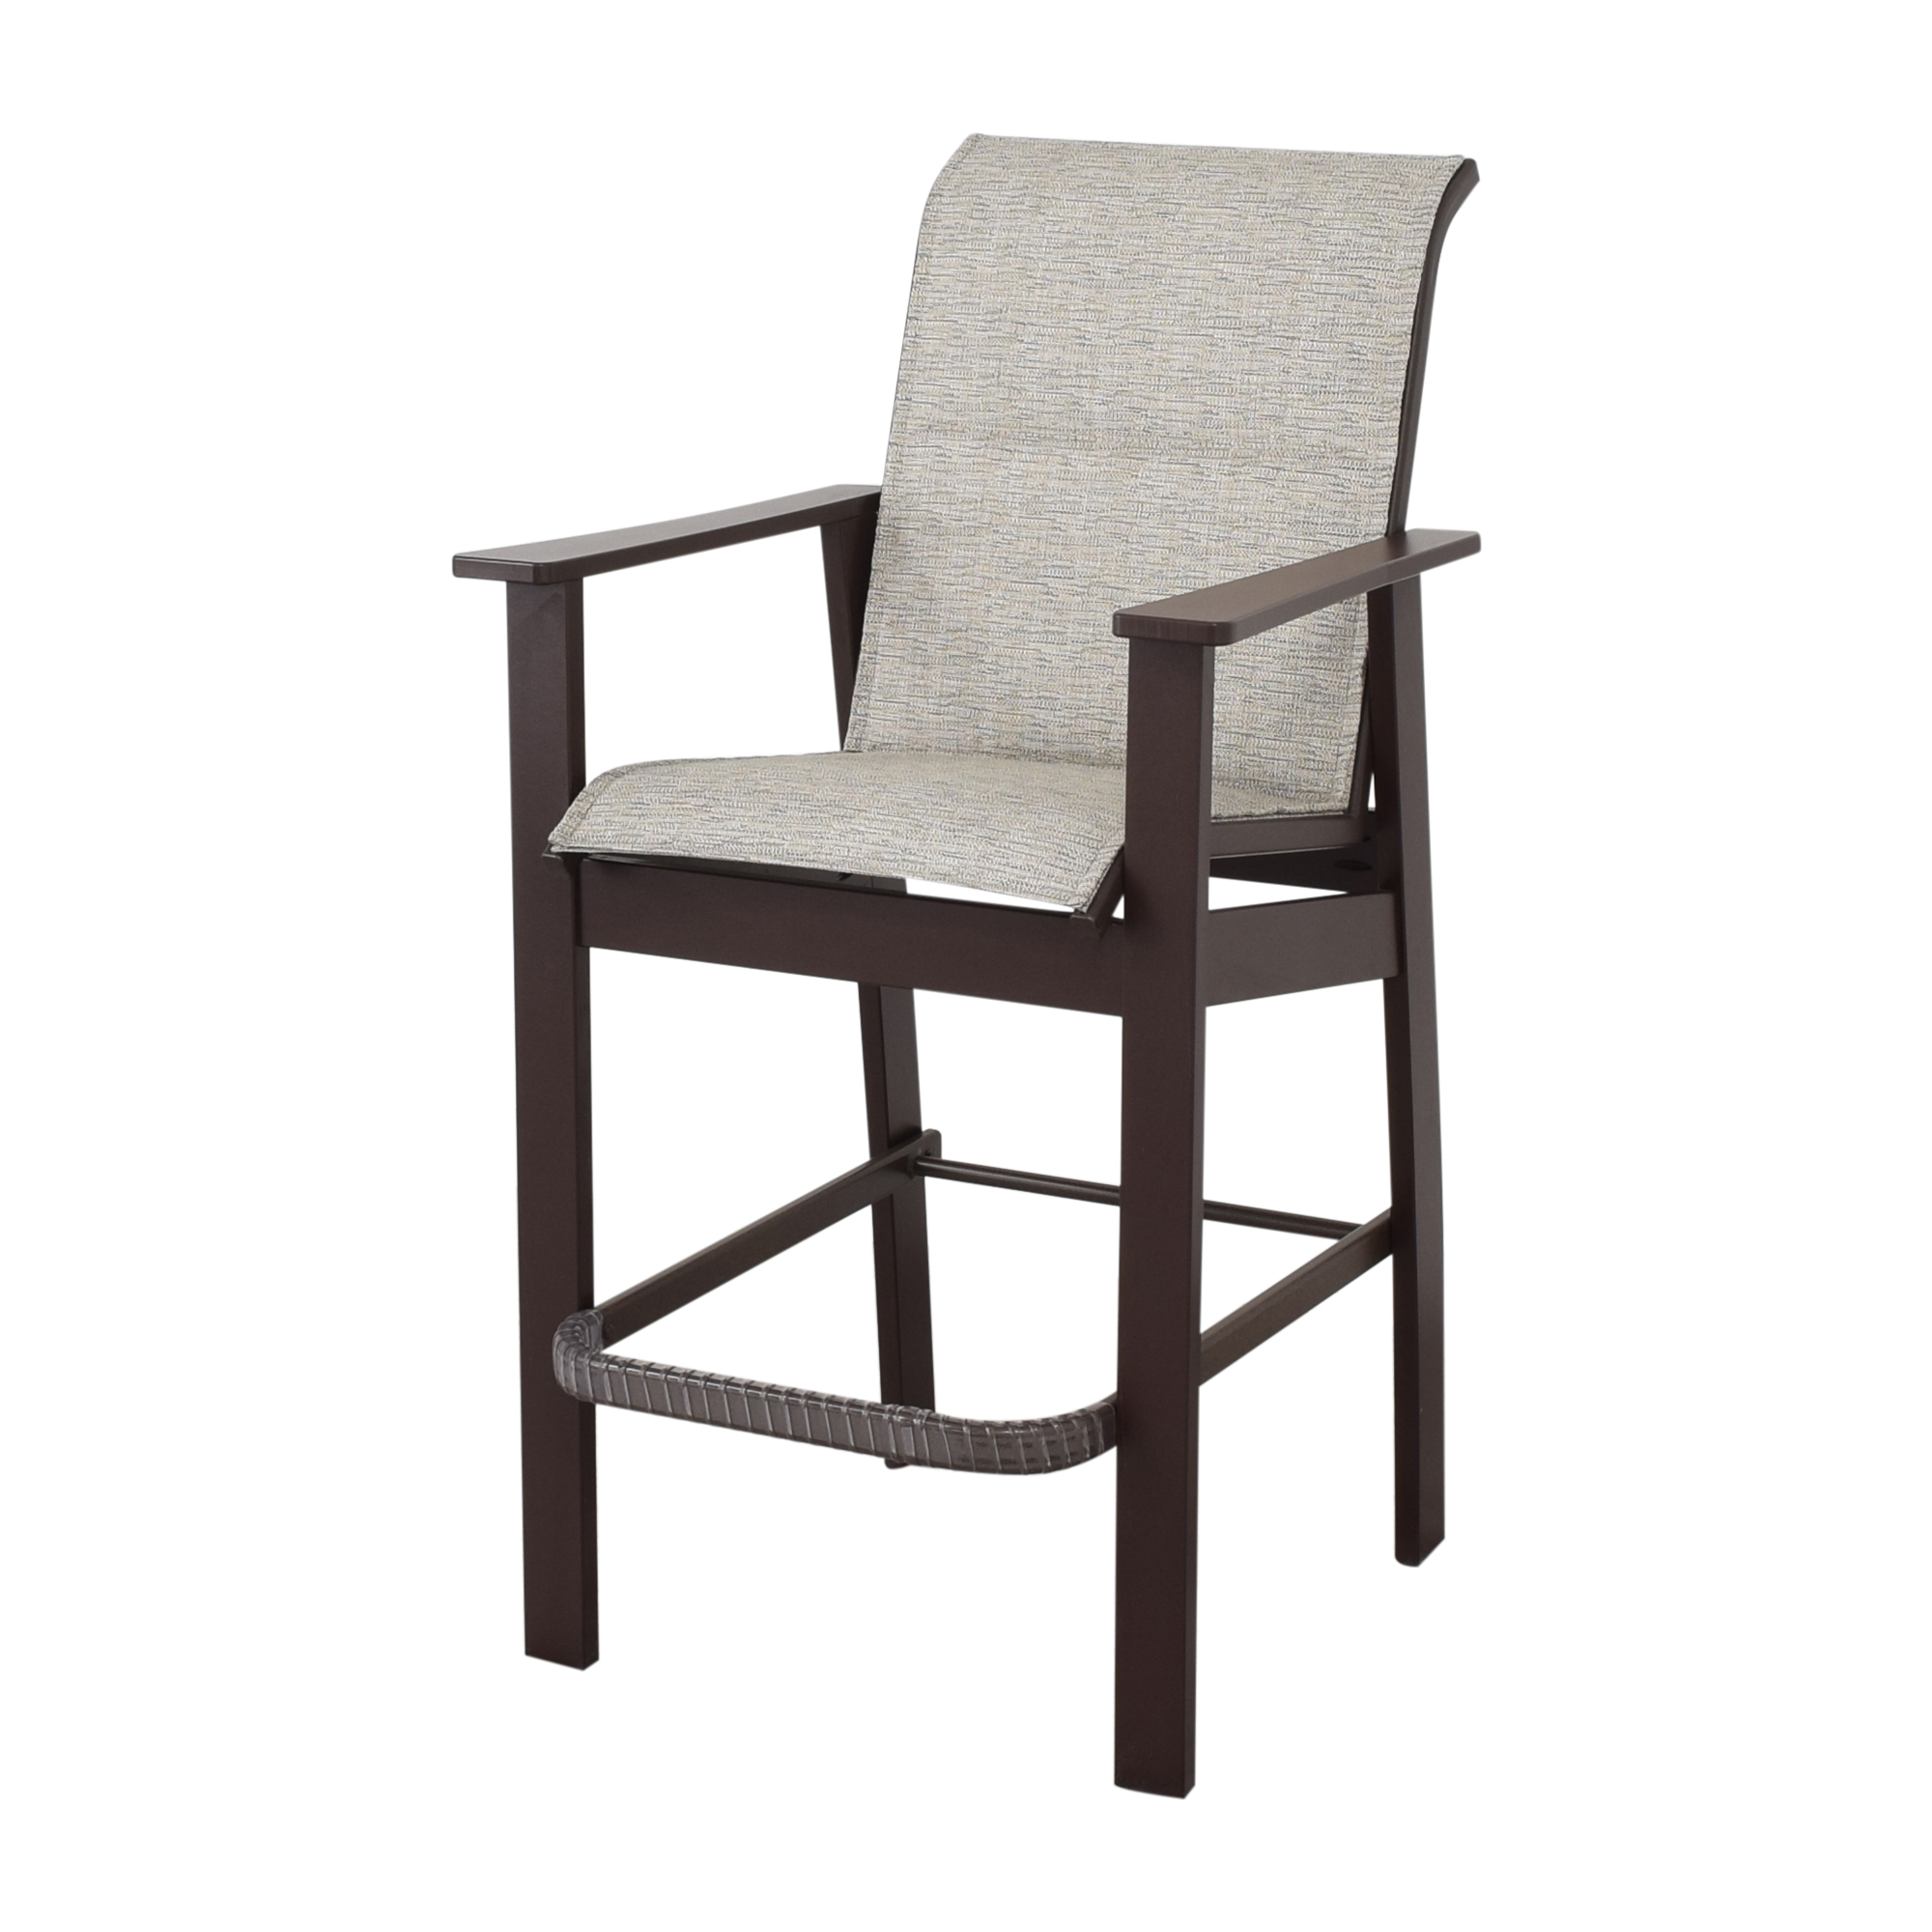 Windward Design Group Windward Design Group High Dining Chairs dimensions